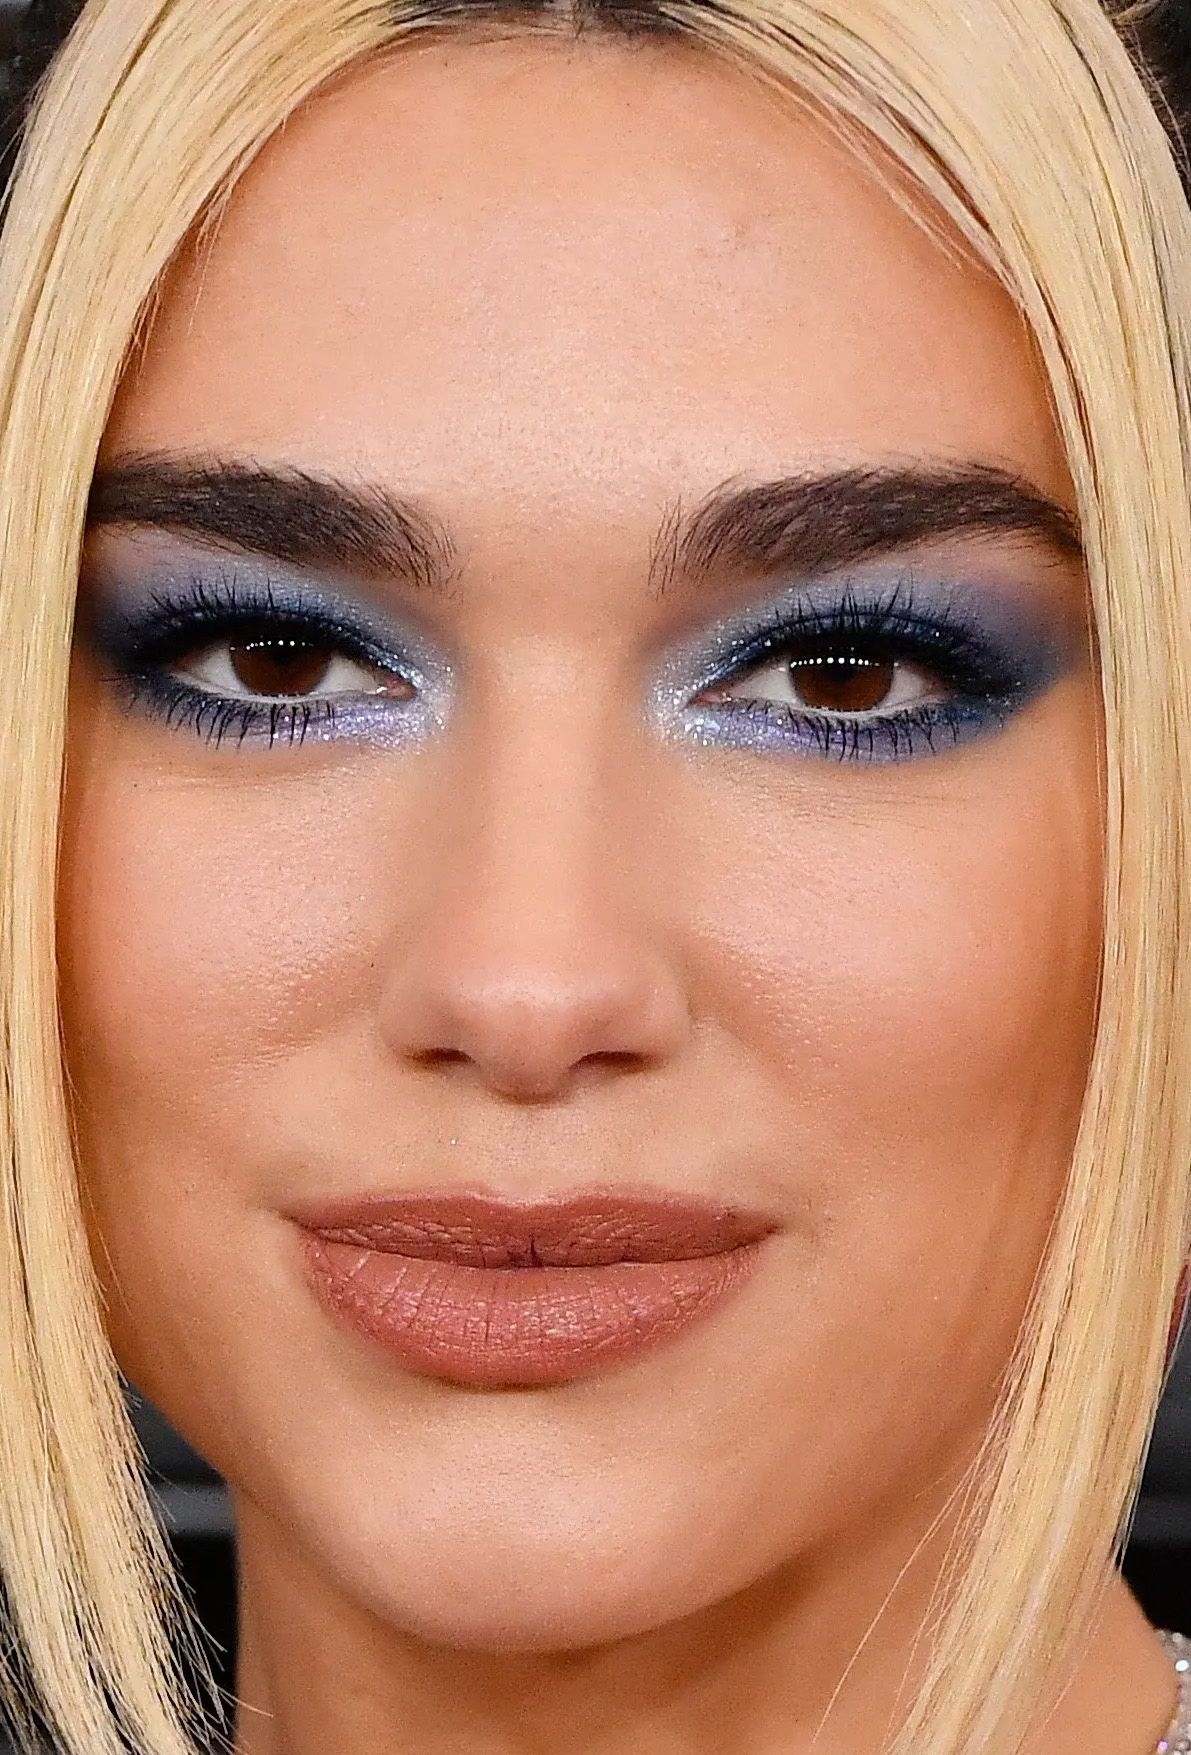 Grammys 2020: The Best Skin, Hair and Makeup on the Red Carpet